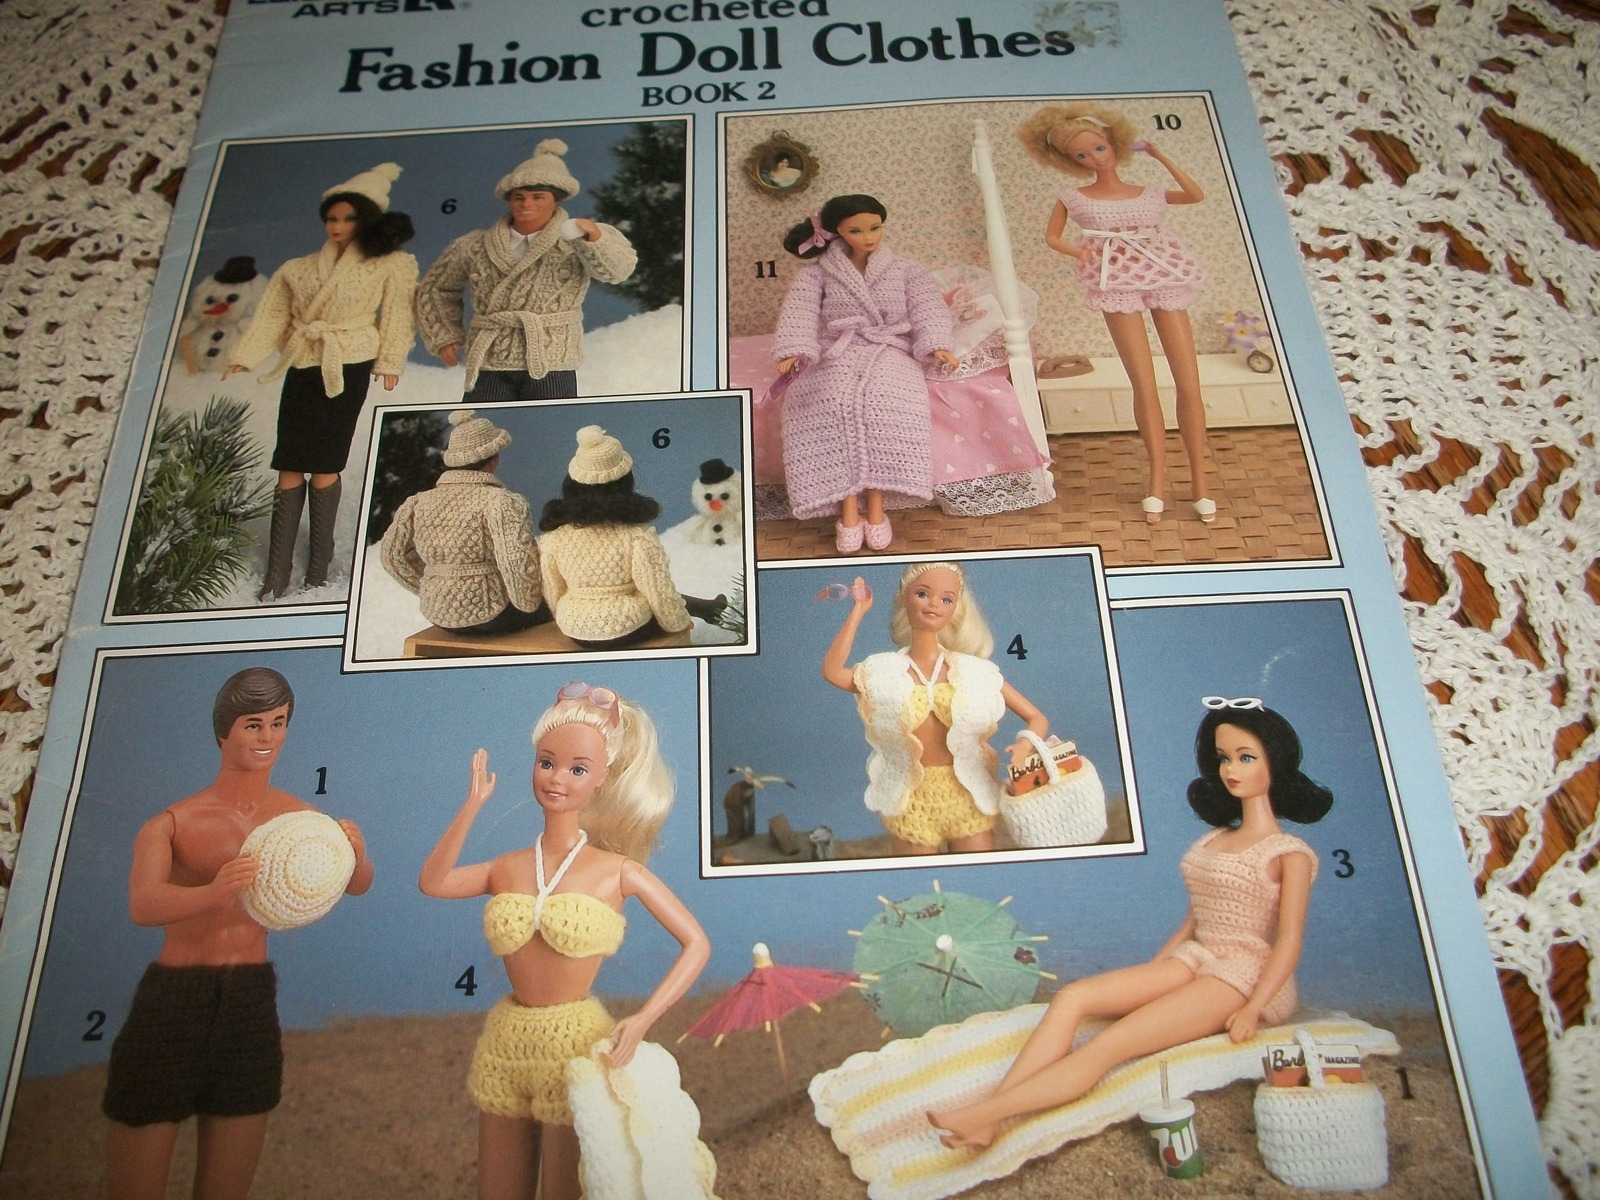 Primary image for Crocheted Fashion Doll Clothes Book 2 Leaflet 437